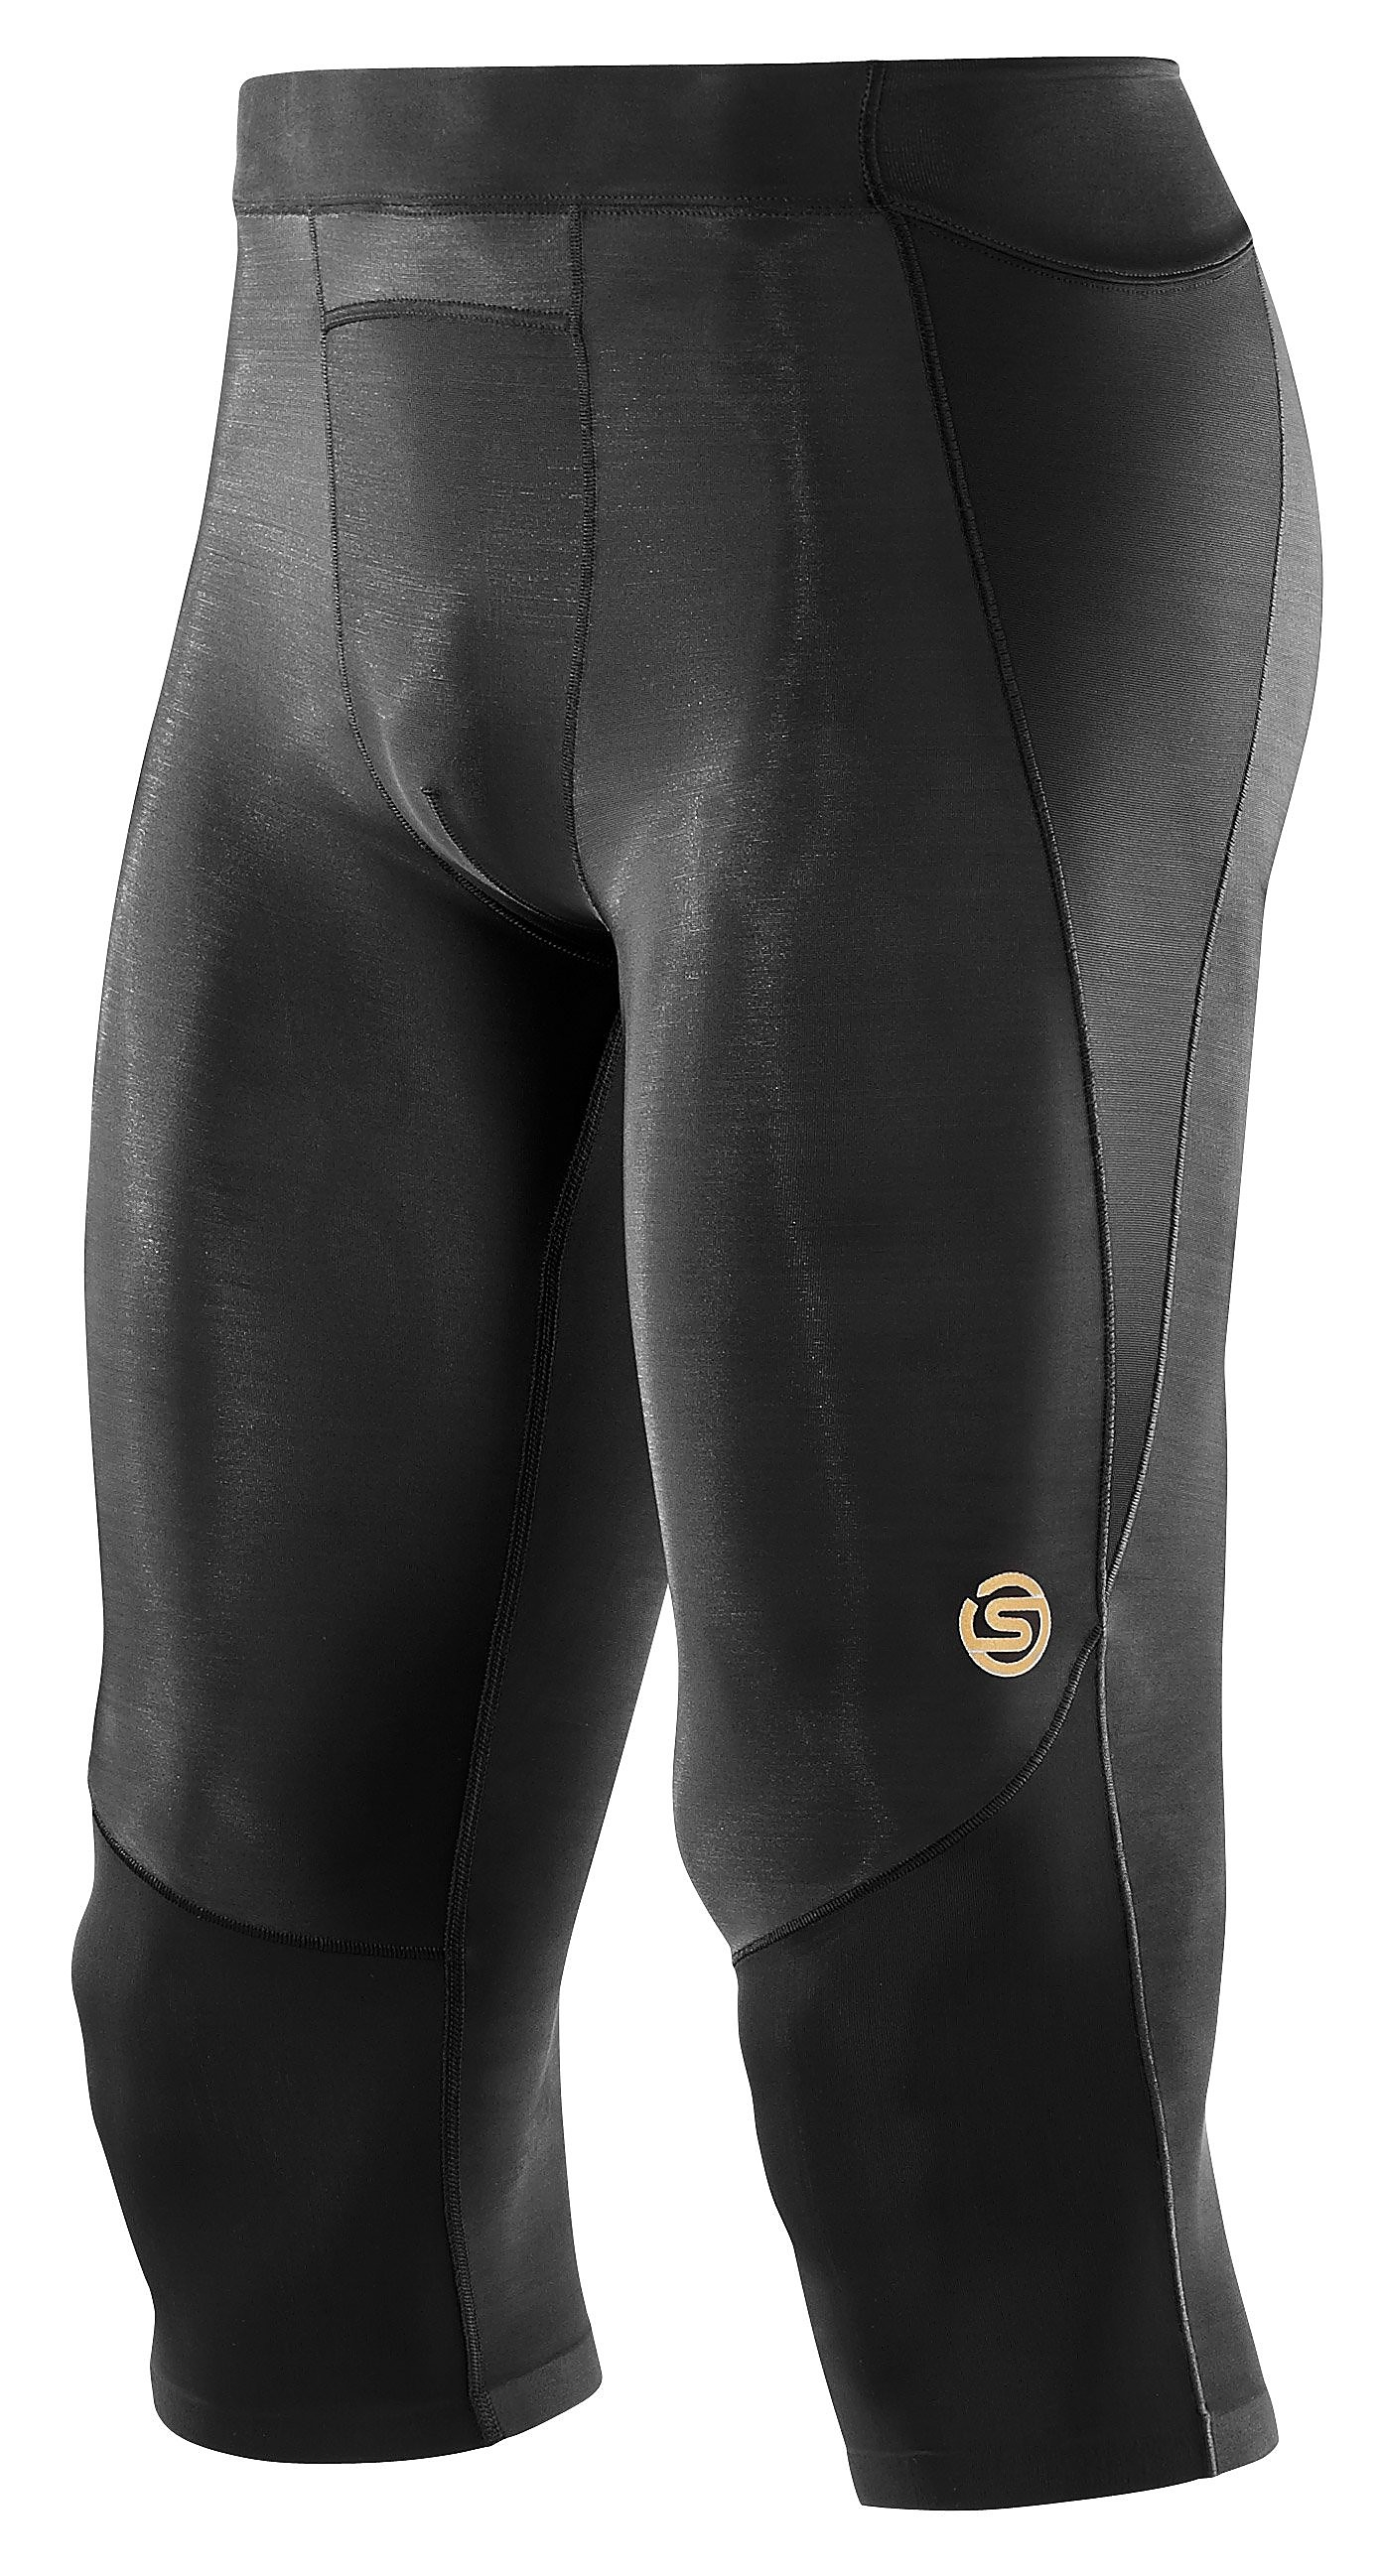 Skins A400 Men's Compression 3/4 Tights